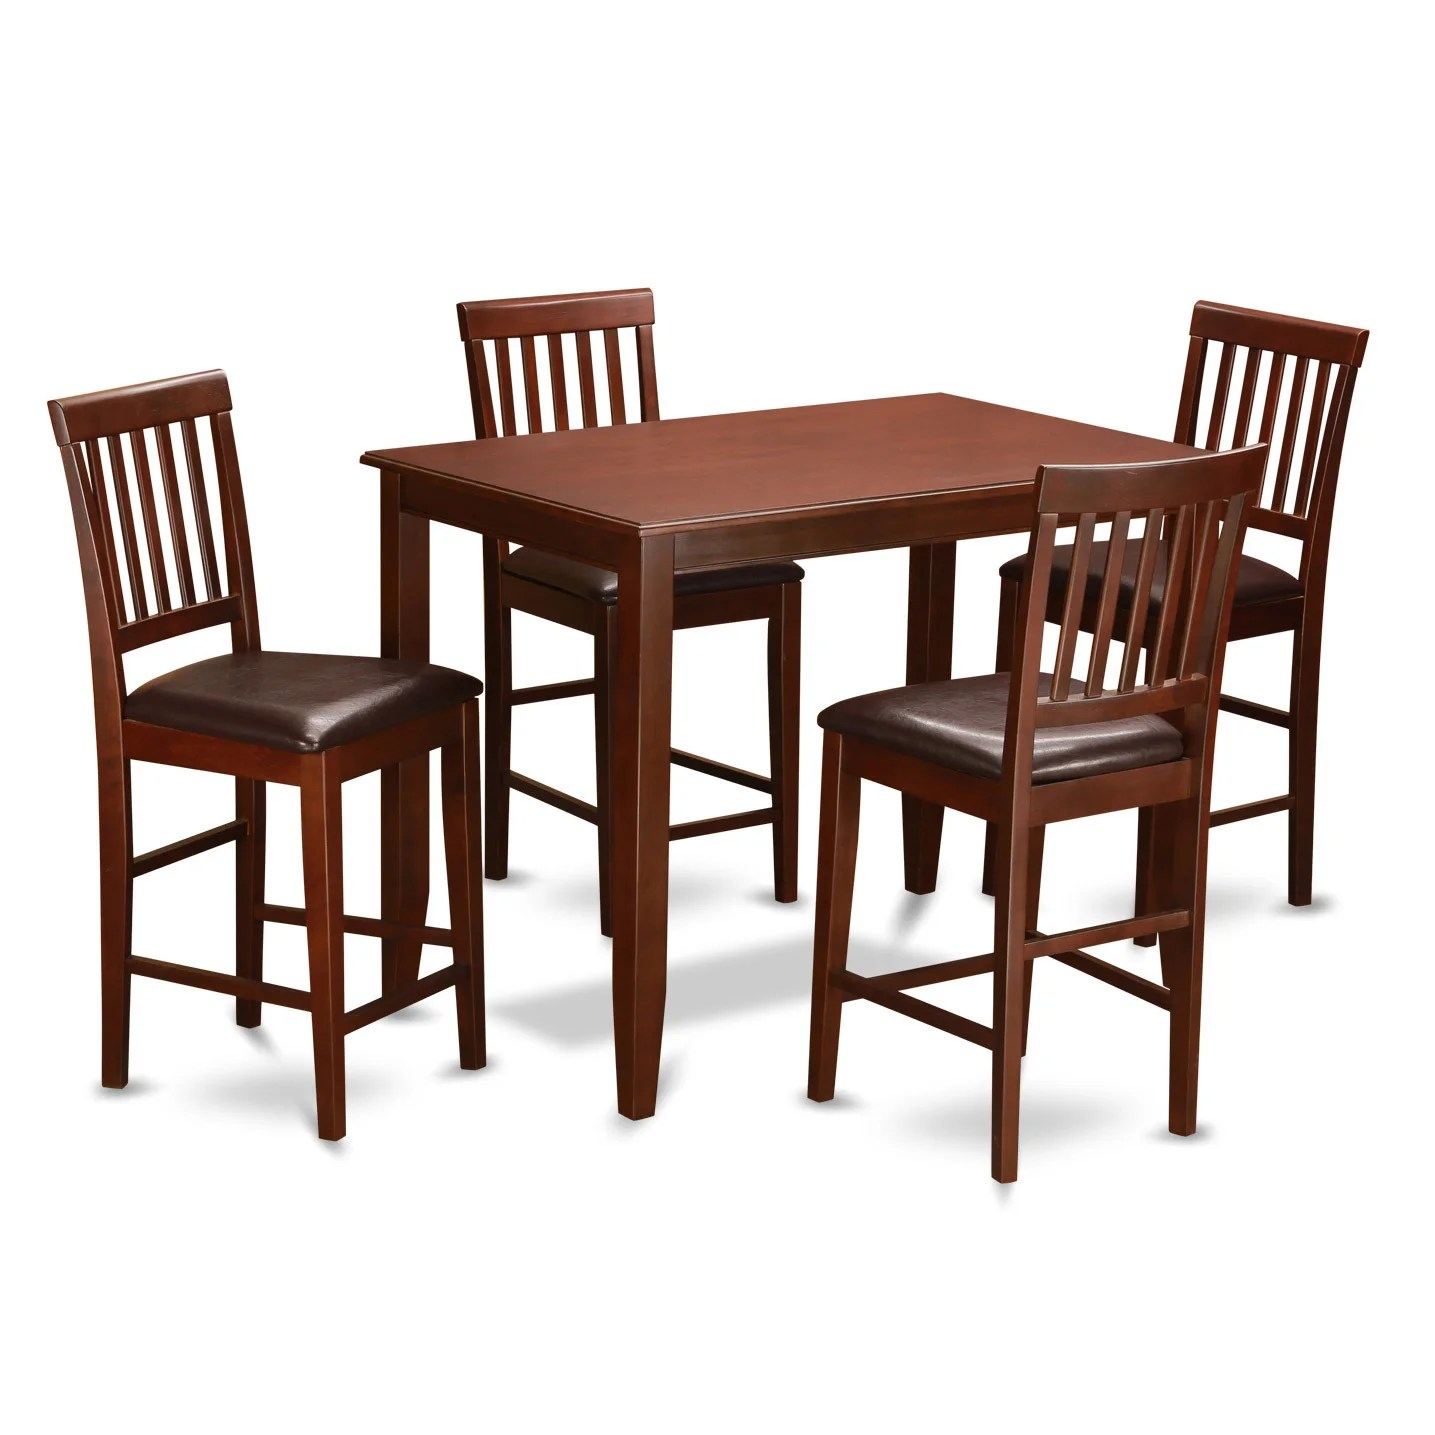 Set Of 4 Kitchen Chairs Details About Mahogany Pub Table And 4 Kitchen Chairs 5 Piece Dining Set